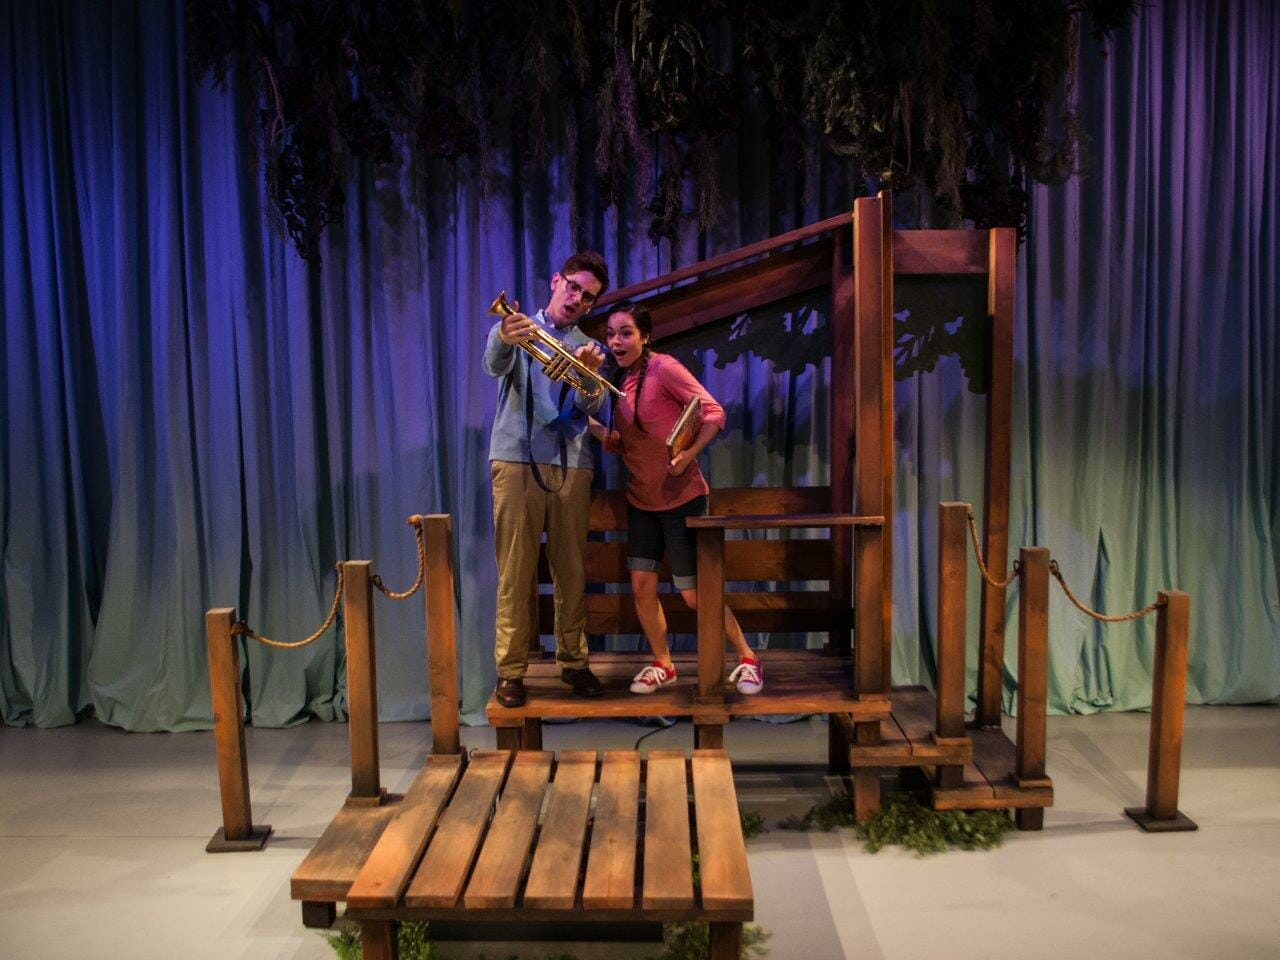 emerald-city-theatres-magic-tree-house-a-night-in-new-orleans_21878409472_o